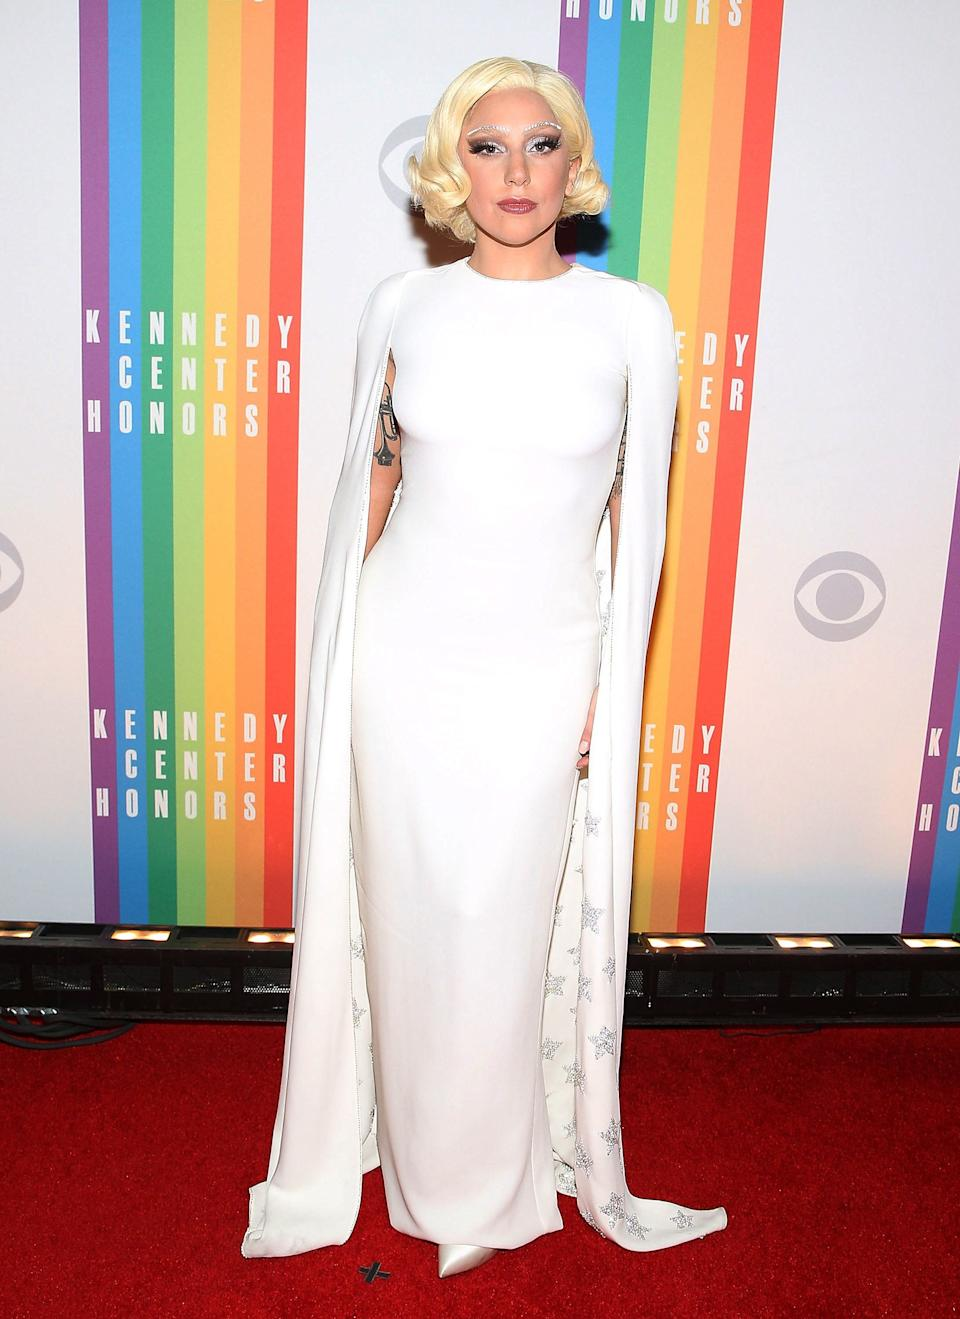 Gaga wears a Valentino gown on the red carpet at the 37th Annual Kennedy Center Honors in Washington, D.C., on Dec. 7, 2014.